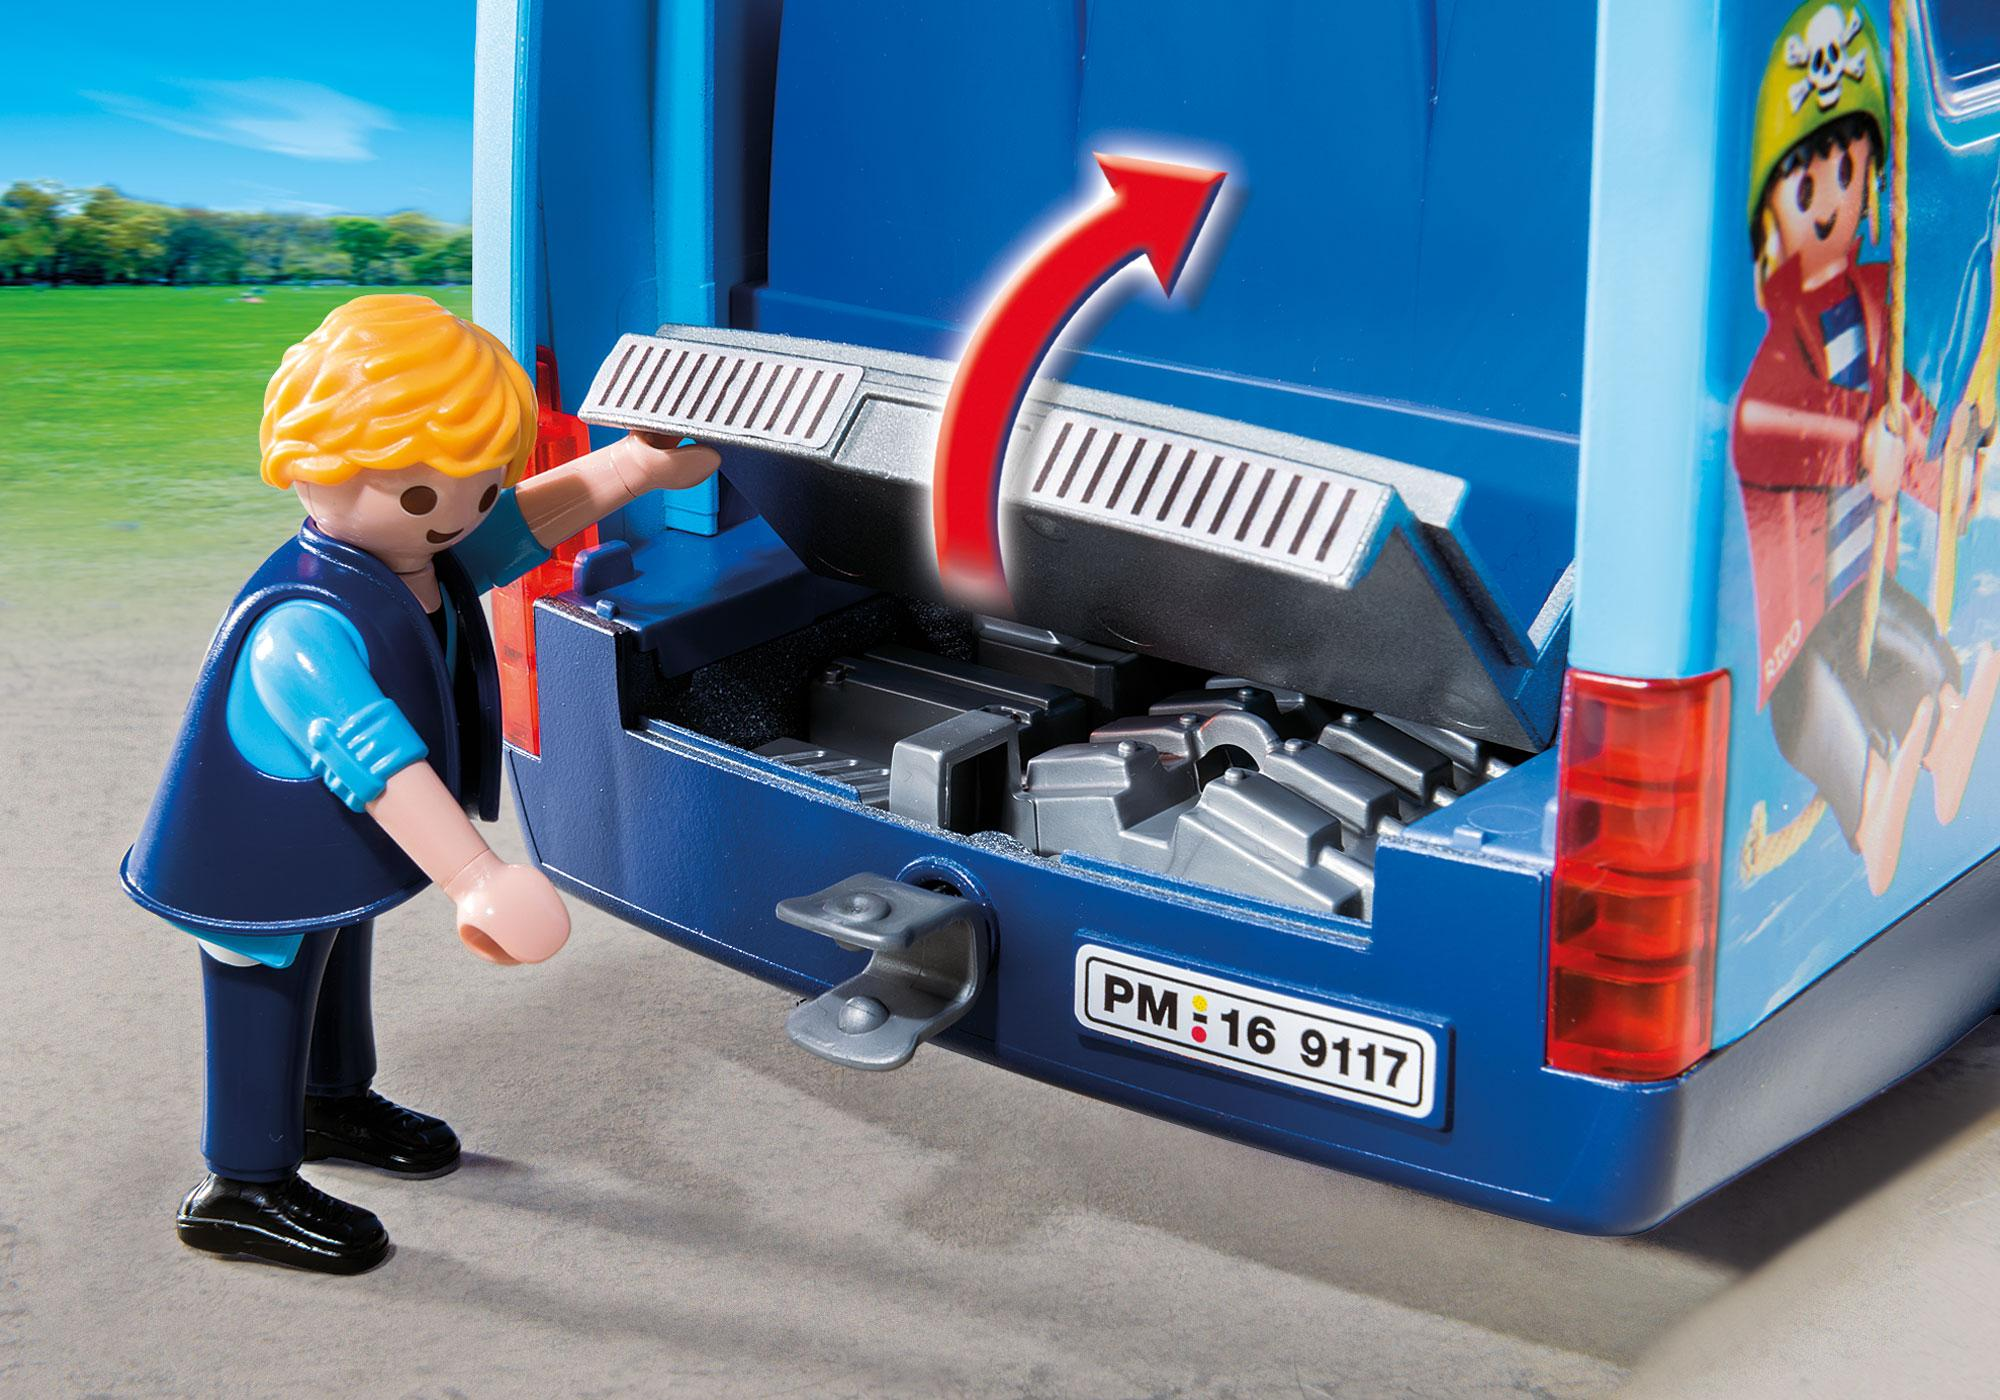 http://media.playmobil.com/i/playmobil/9117_product_extra4